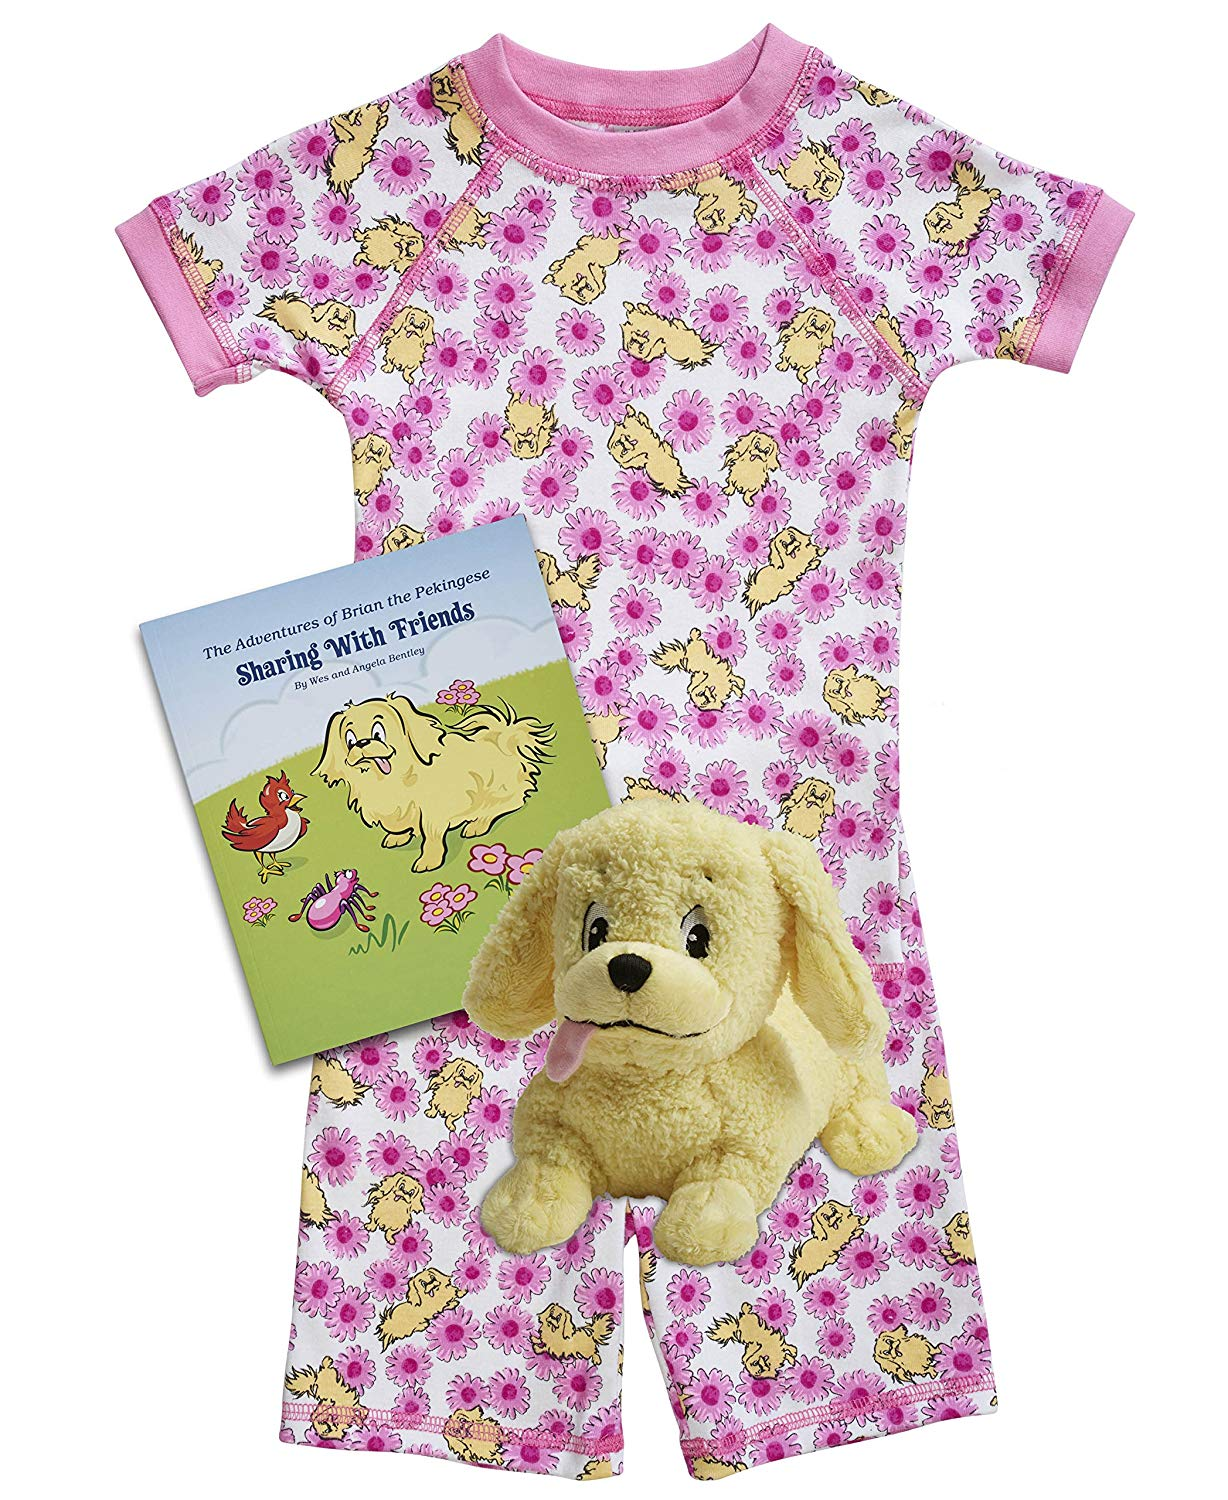 Brian the Pekingese Girls & Boys Cotton Shorts Pajamas, Plush Toy & Children's Book Bedtime Gift Set